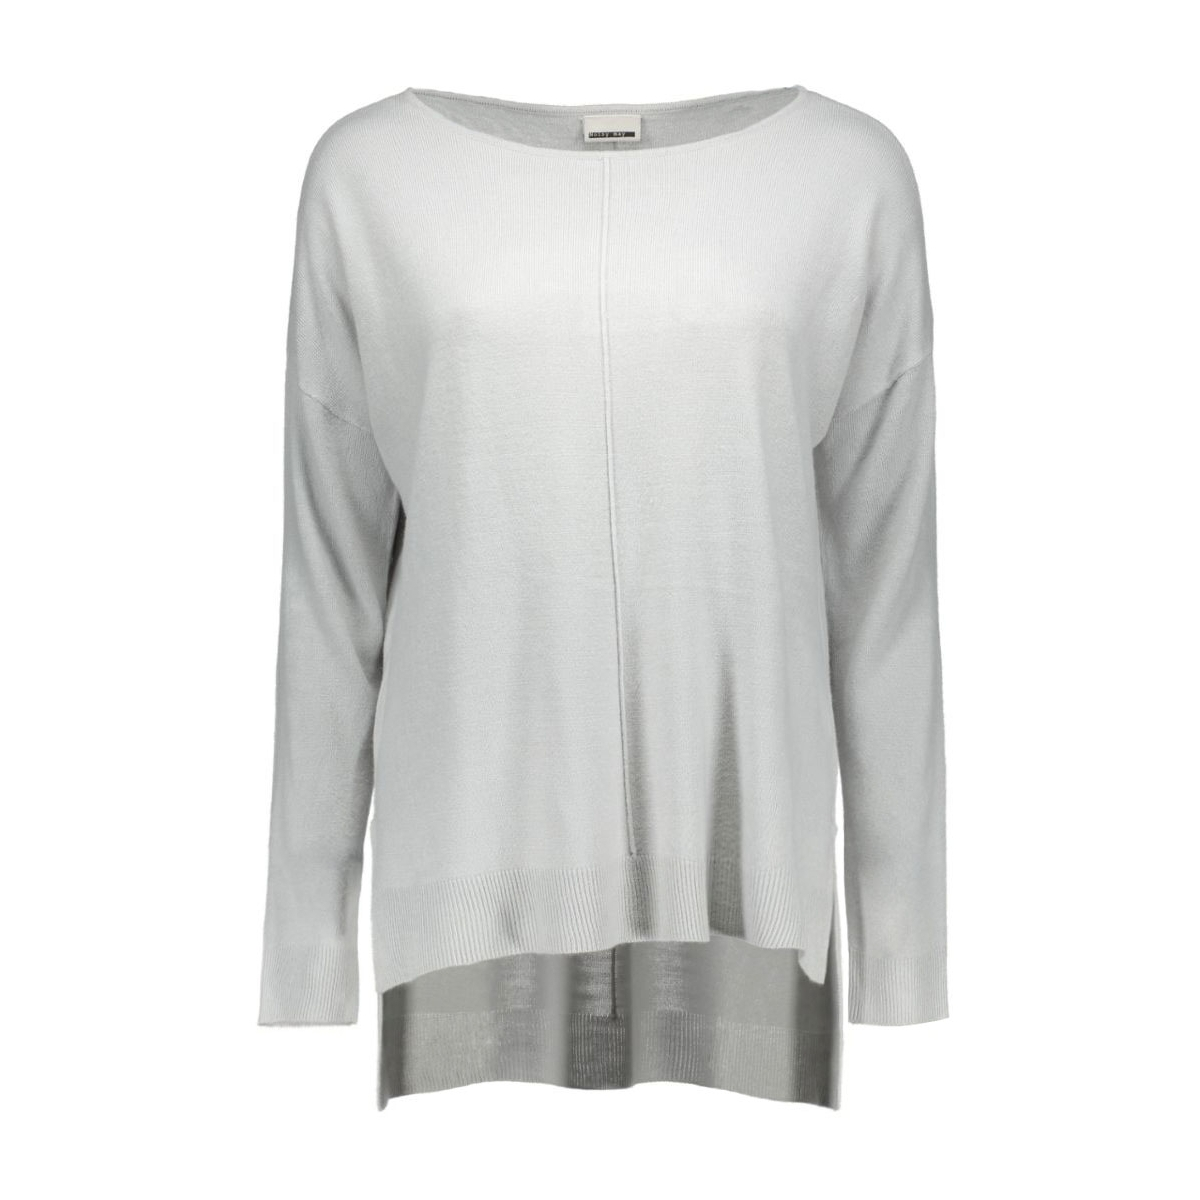 nmchen l/s boatneck knit top - n 10160941 noisy may trui high-rise